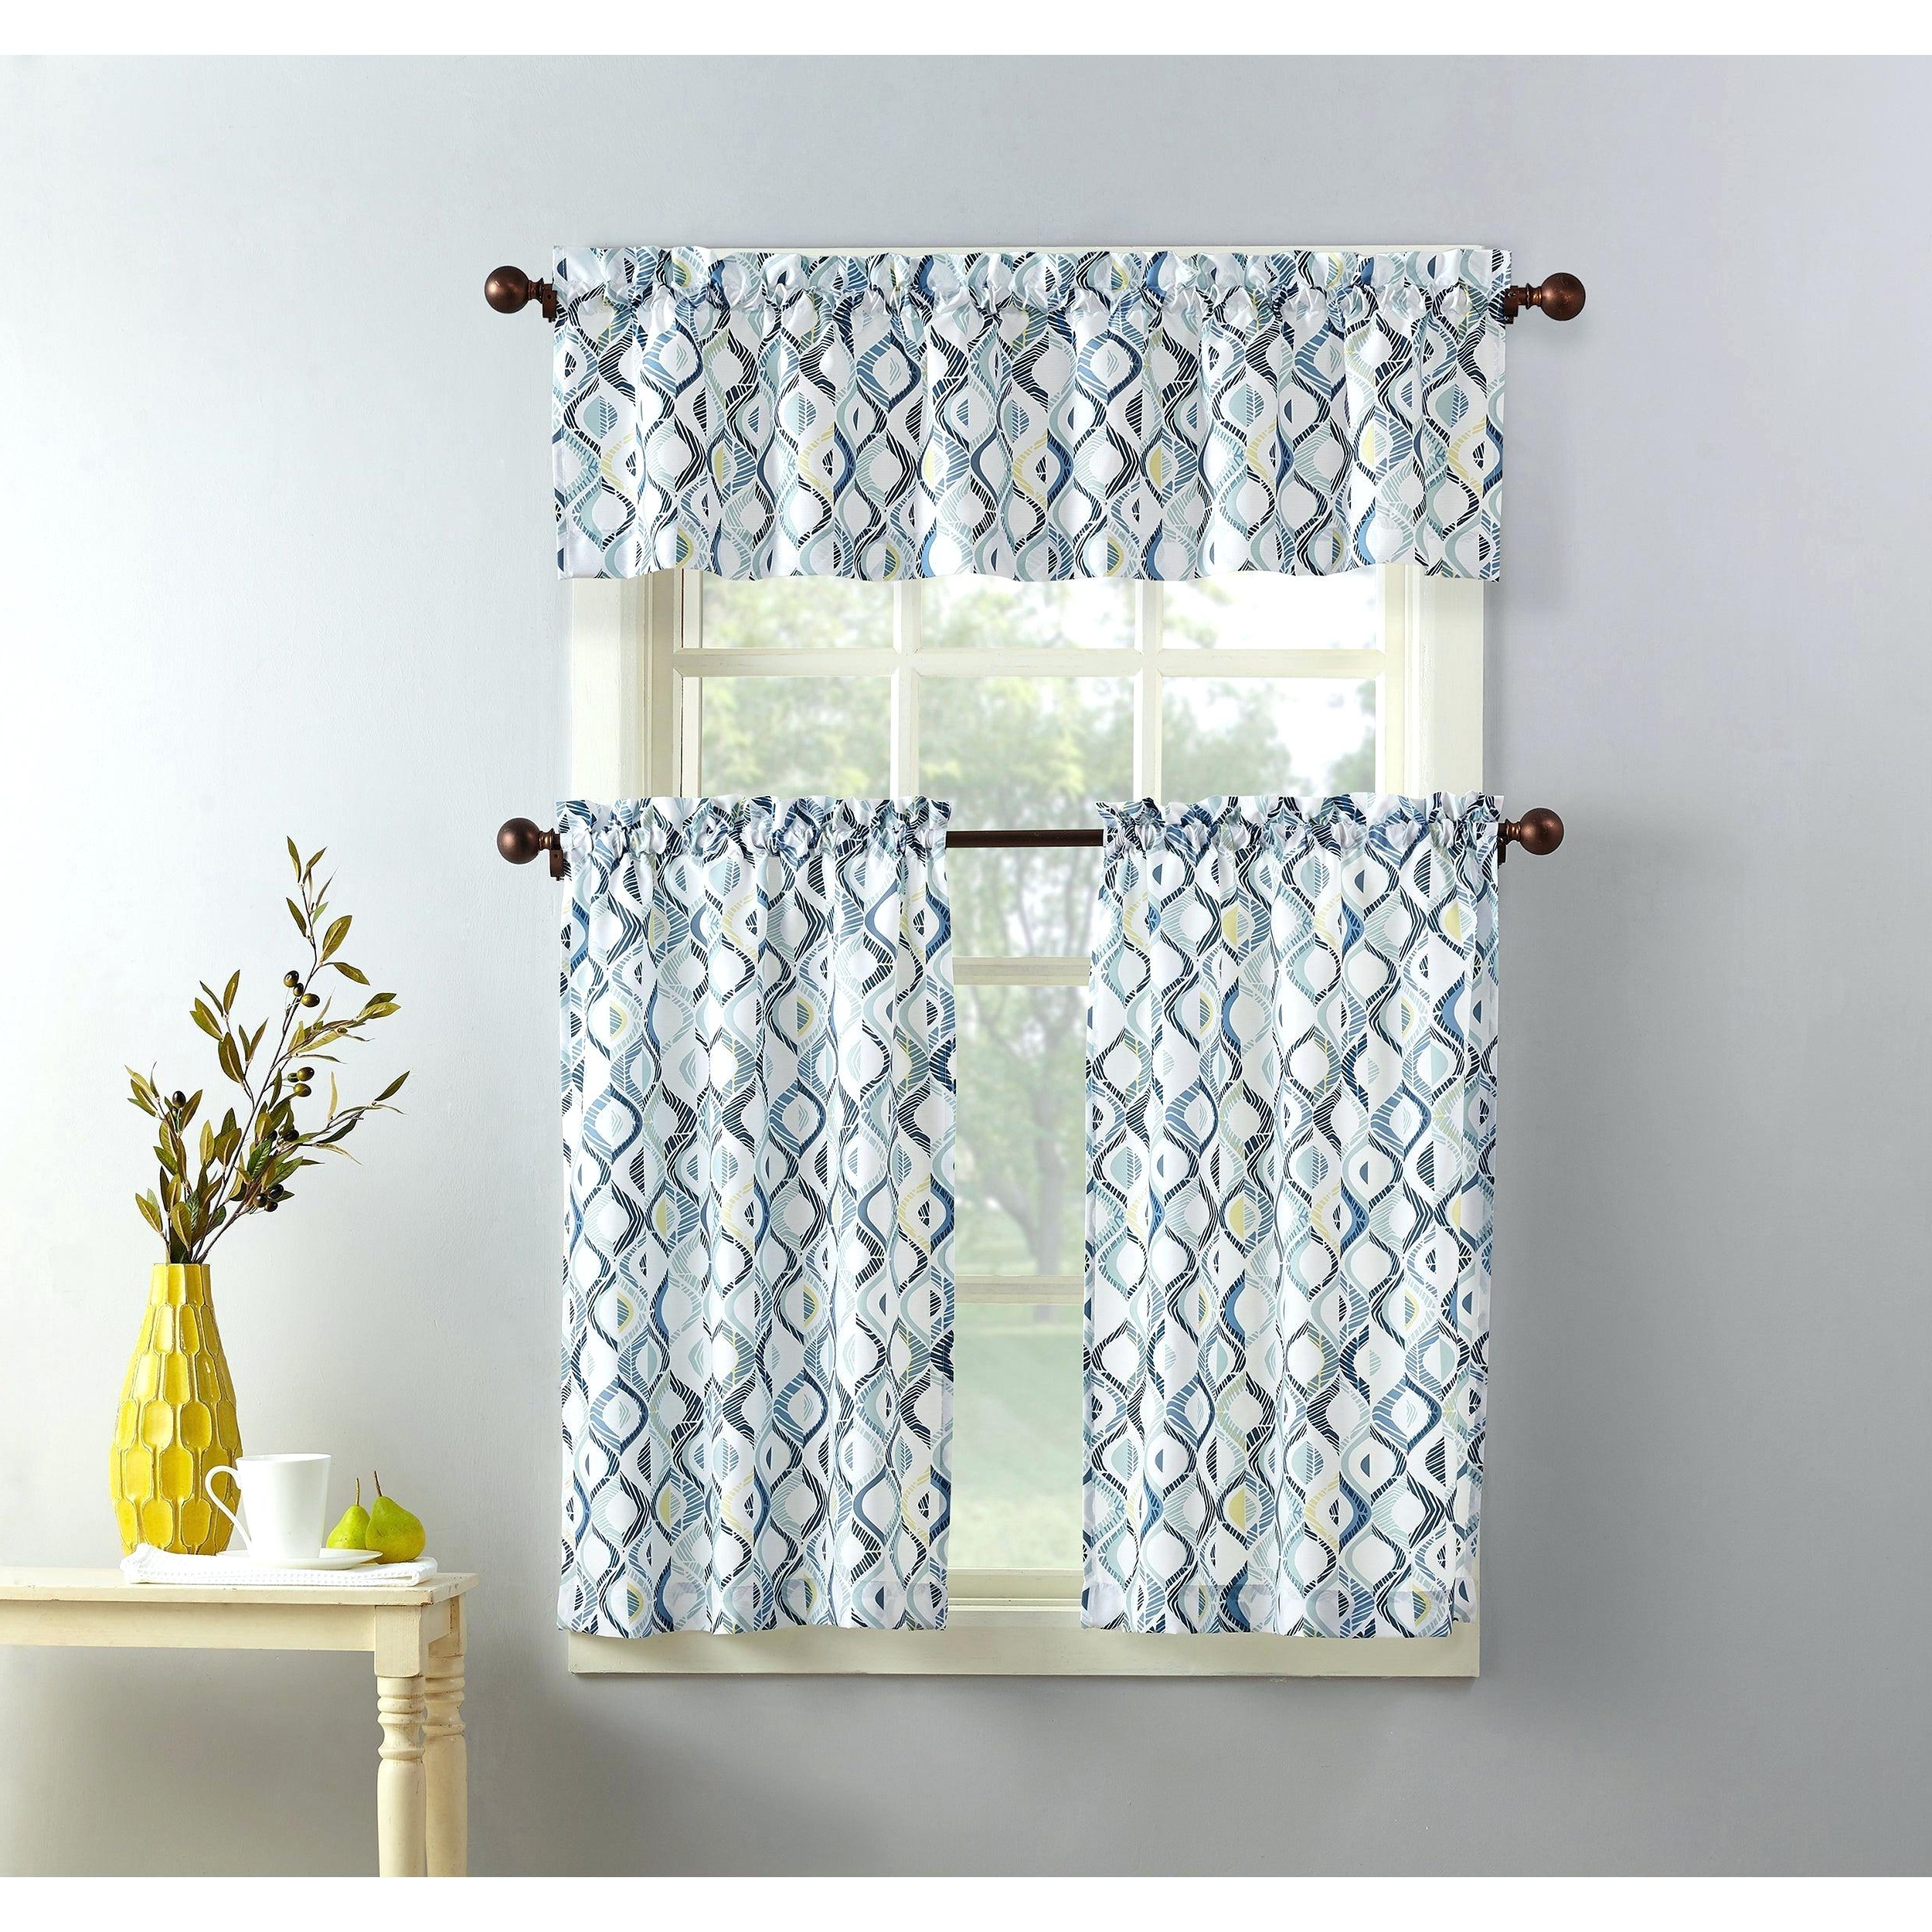 Solid Microfiber 3 Piece Kitchen Curtain Valance And Tiers Sets Throughout Well Liked Curtain Sets With Valance – Onsaturn (View 9 of 20)